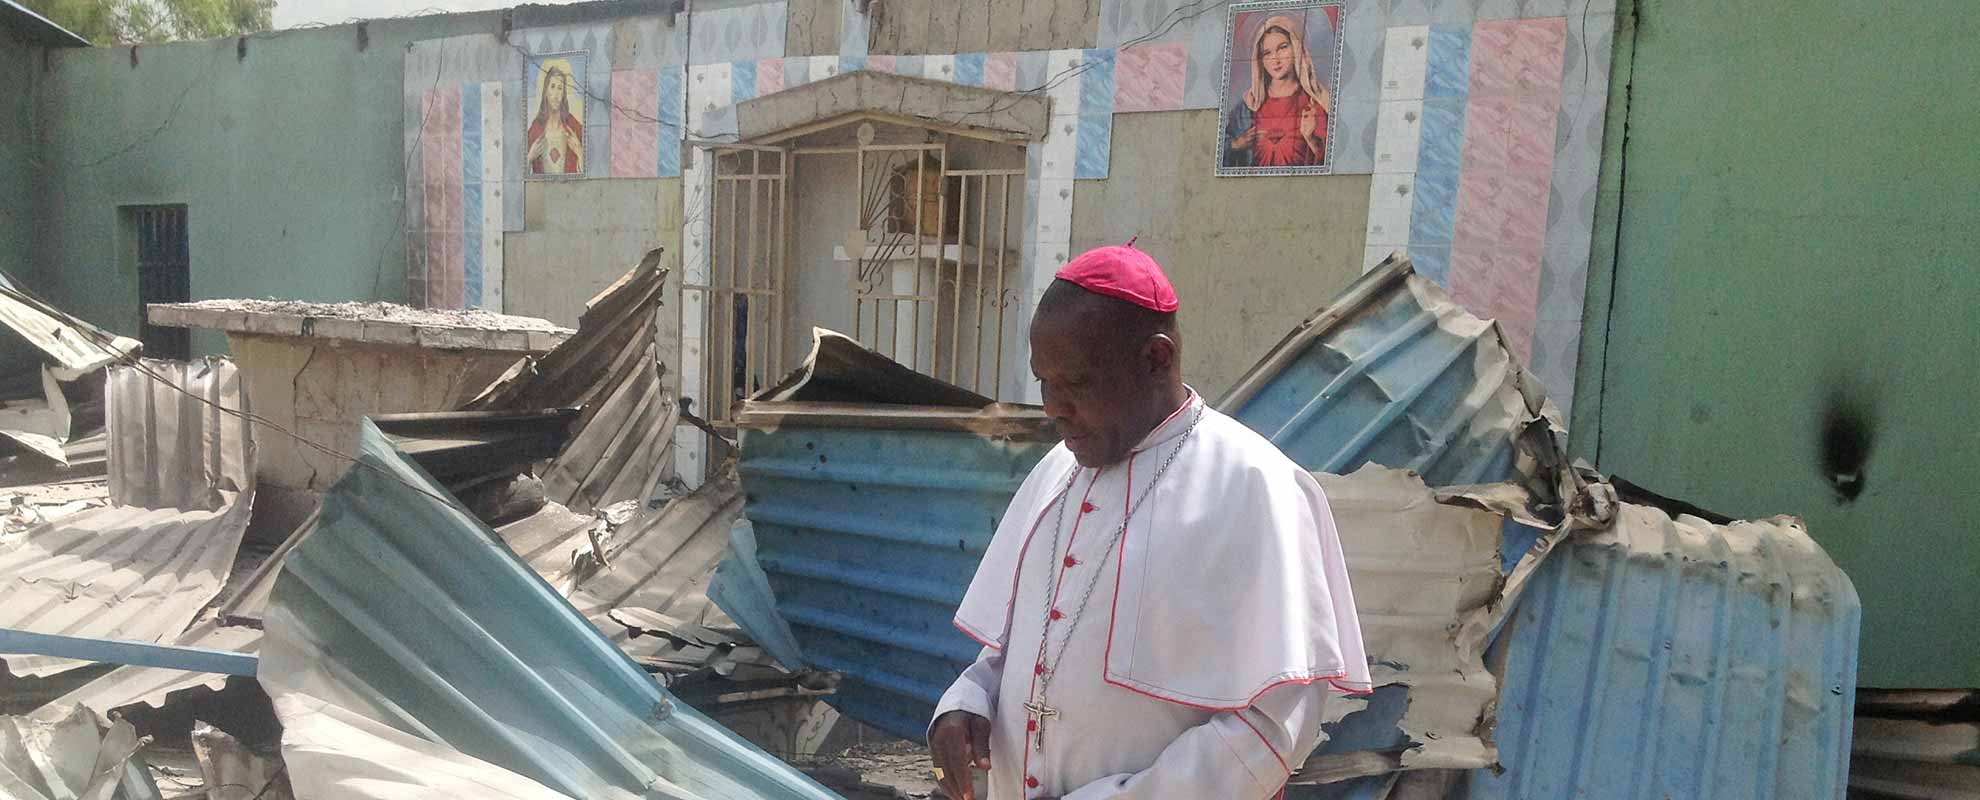 ACN will send emergency help for widows and orphans affected by Boko Haram violence in the Nigerian Catholic diocese of Maiduguri.